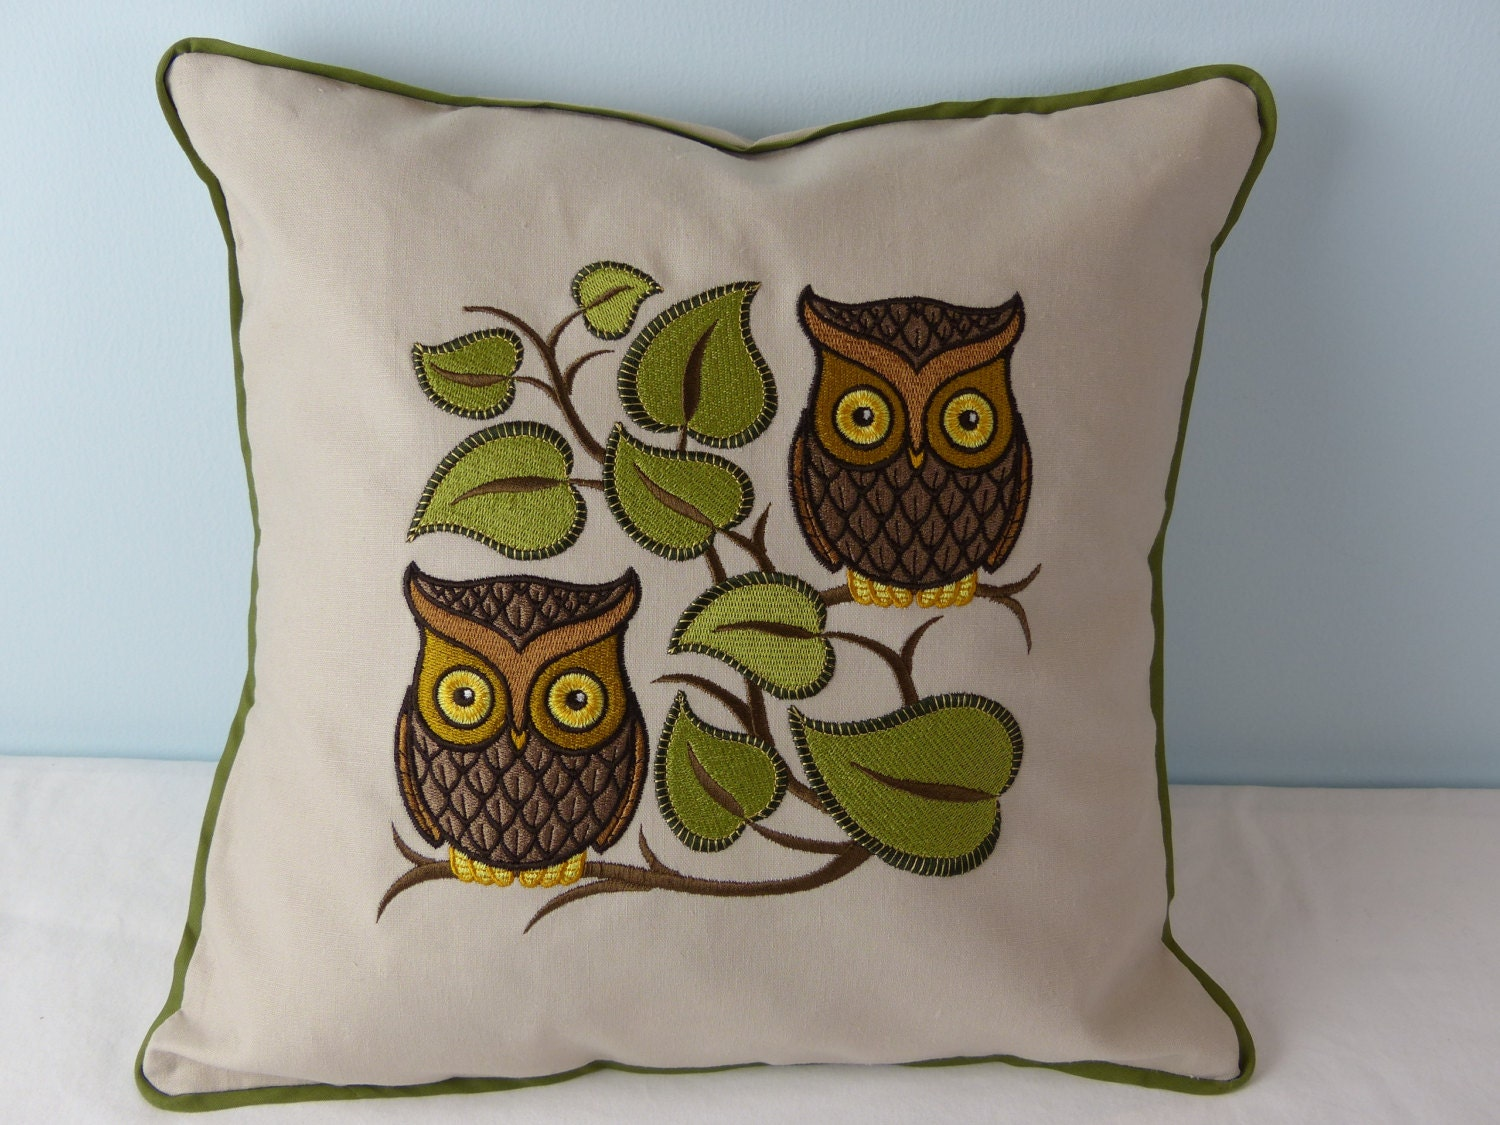 Owl Throw Pillow Covers : owl throw pillow cover embroidered cushion nature gift